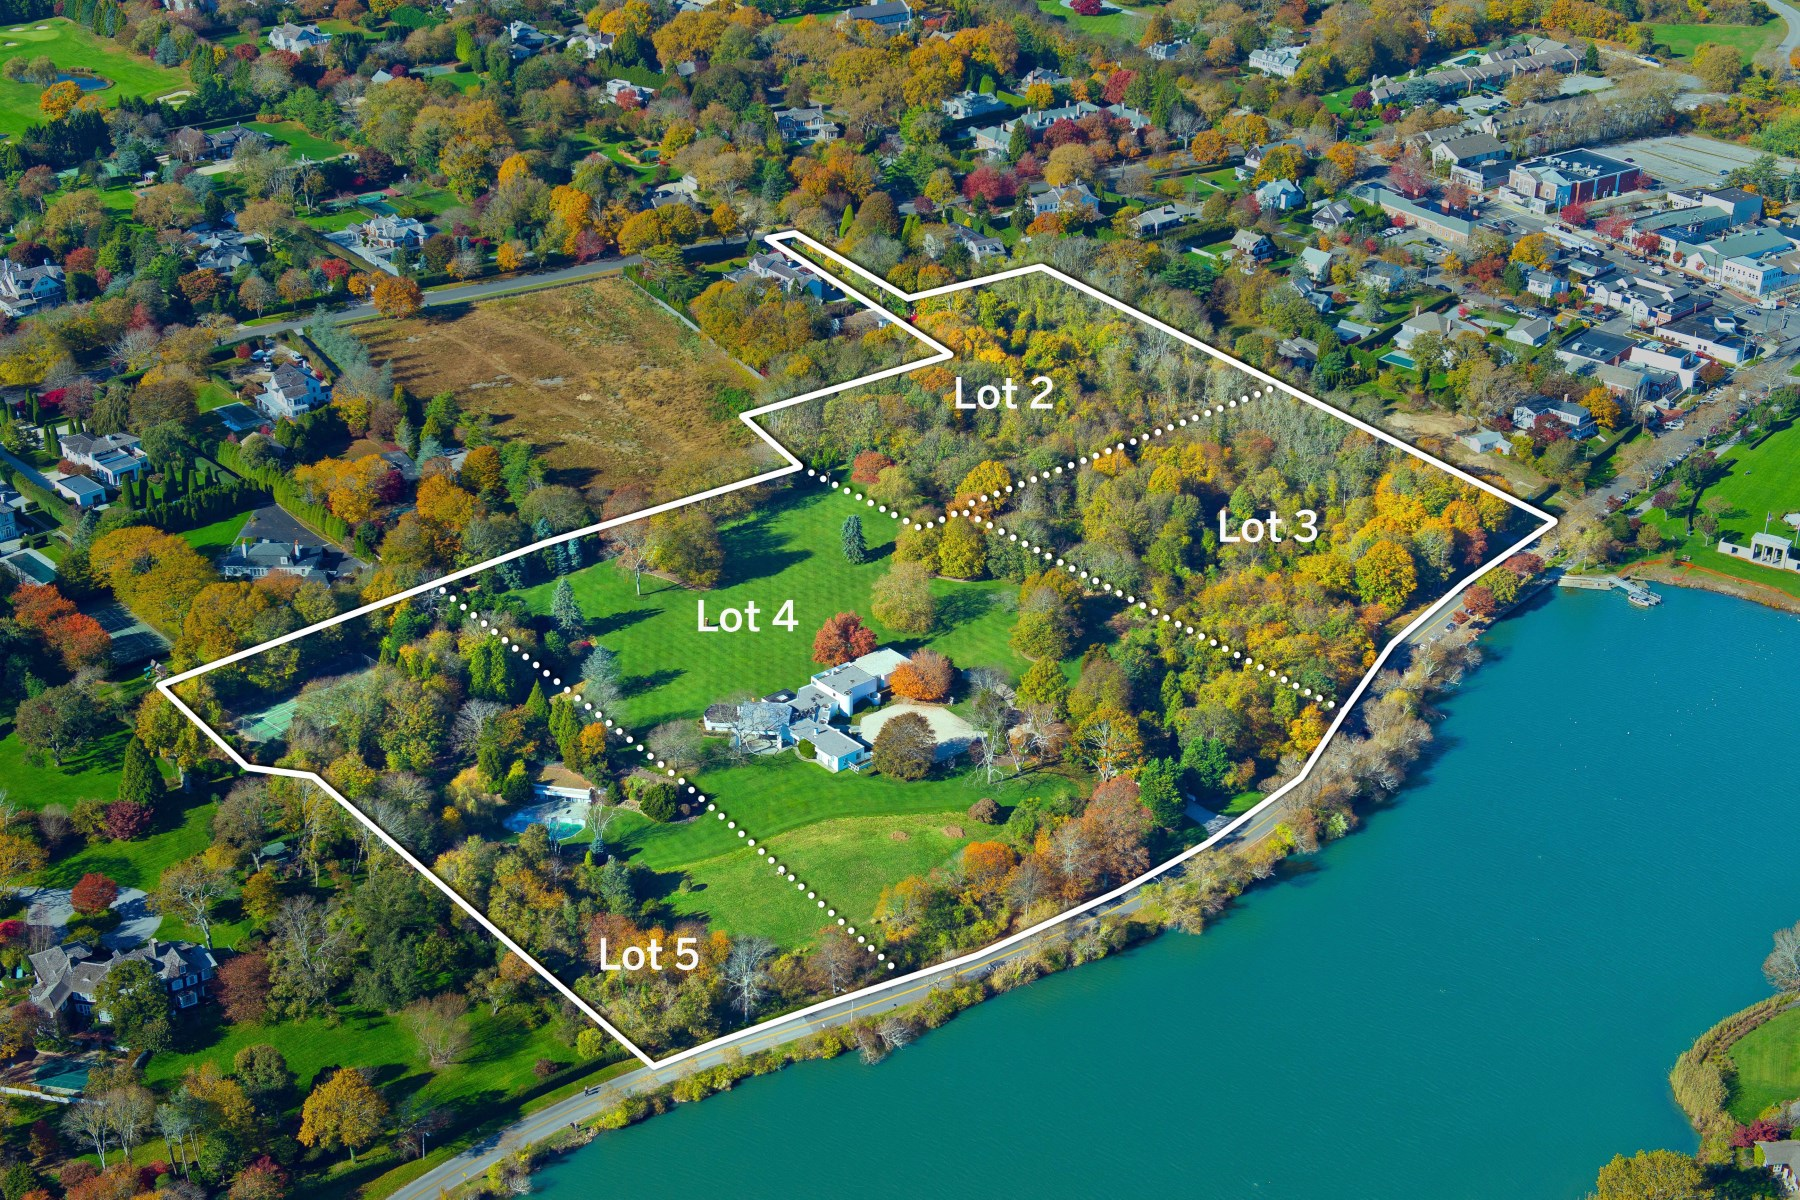 Villa per Vendita alle ore Overlooking Lake Agawam 111, 137, 153 Pond Lane & 52 First Neck Lane 4 properties combined Southampton Estate Section, Southampton, New York, 11968 Stati Uniti